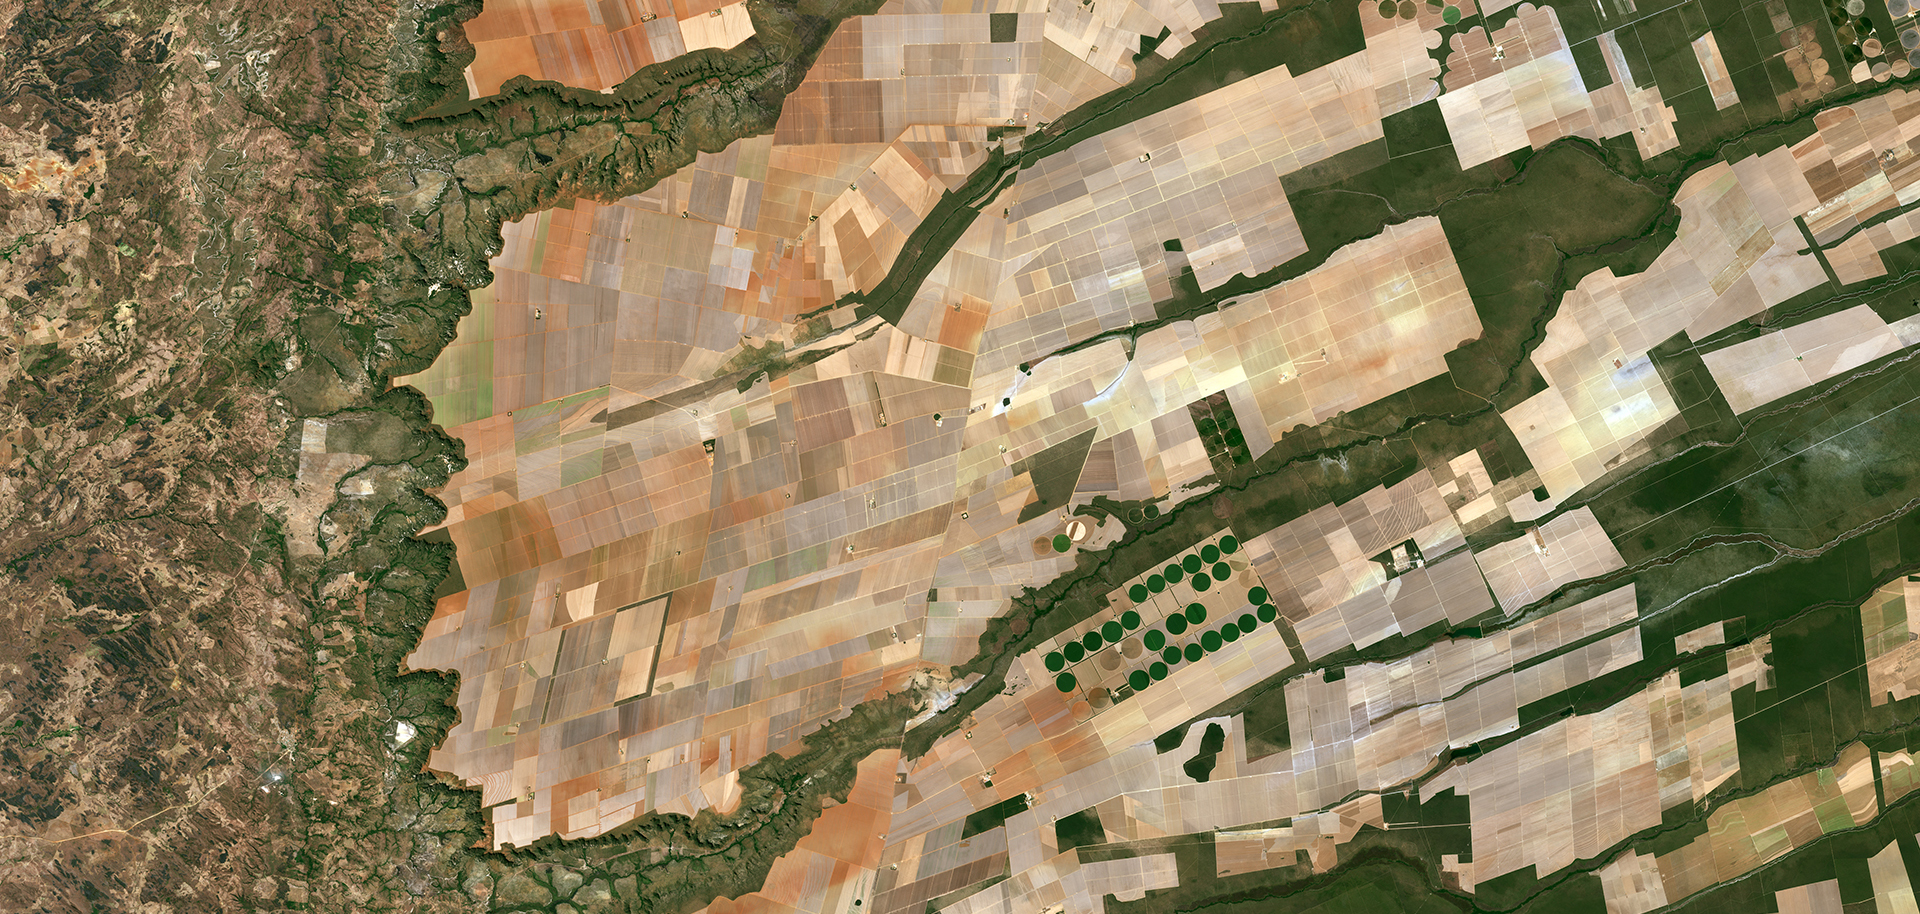 Agricultural landscapes in central-eastern Brazil where the Bahia, Tocantins and Goiás states meet. The area is particularly known for soybean production. Photo: Modified Copernicus Sentinel data, 2016, processed by ESA